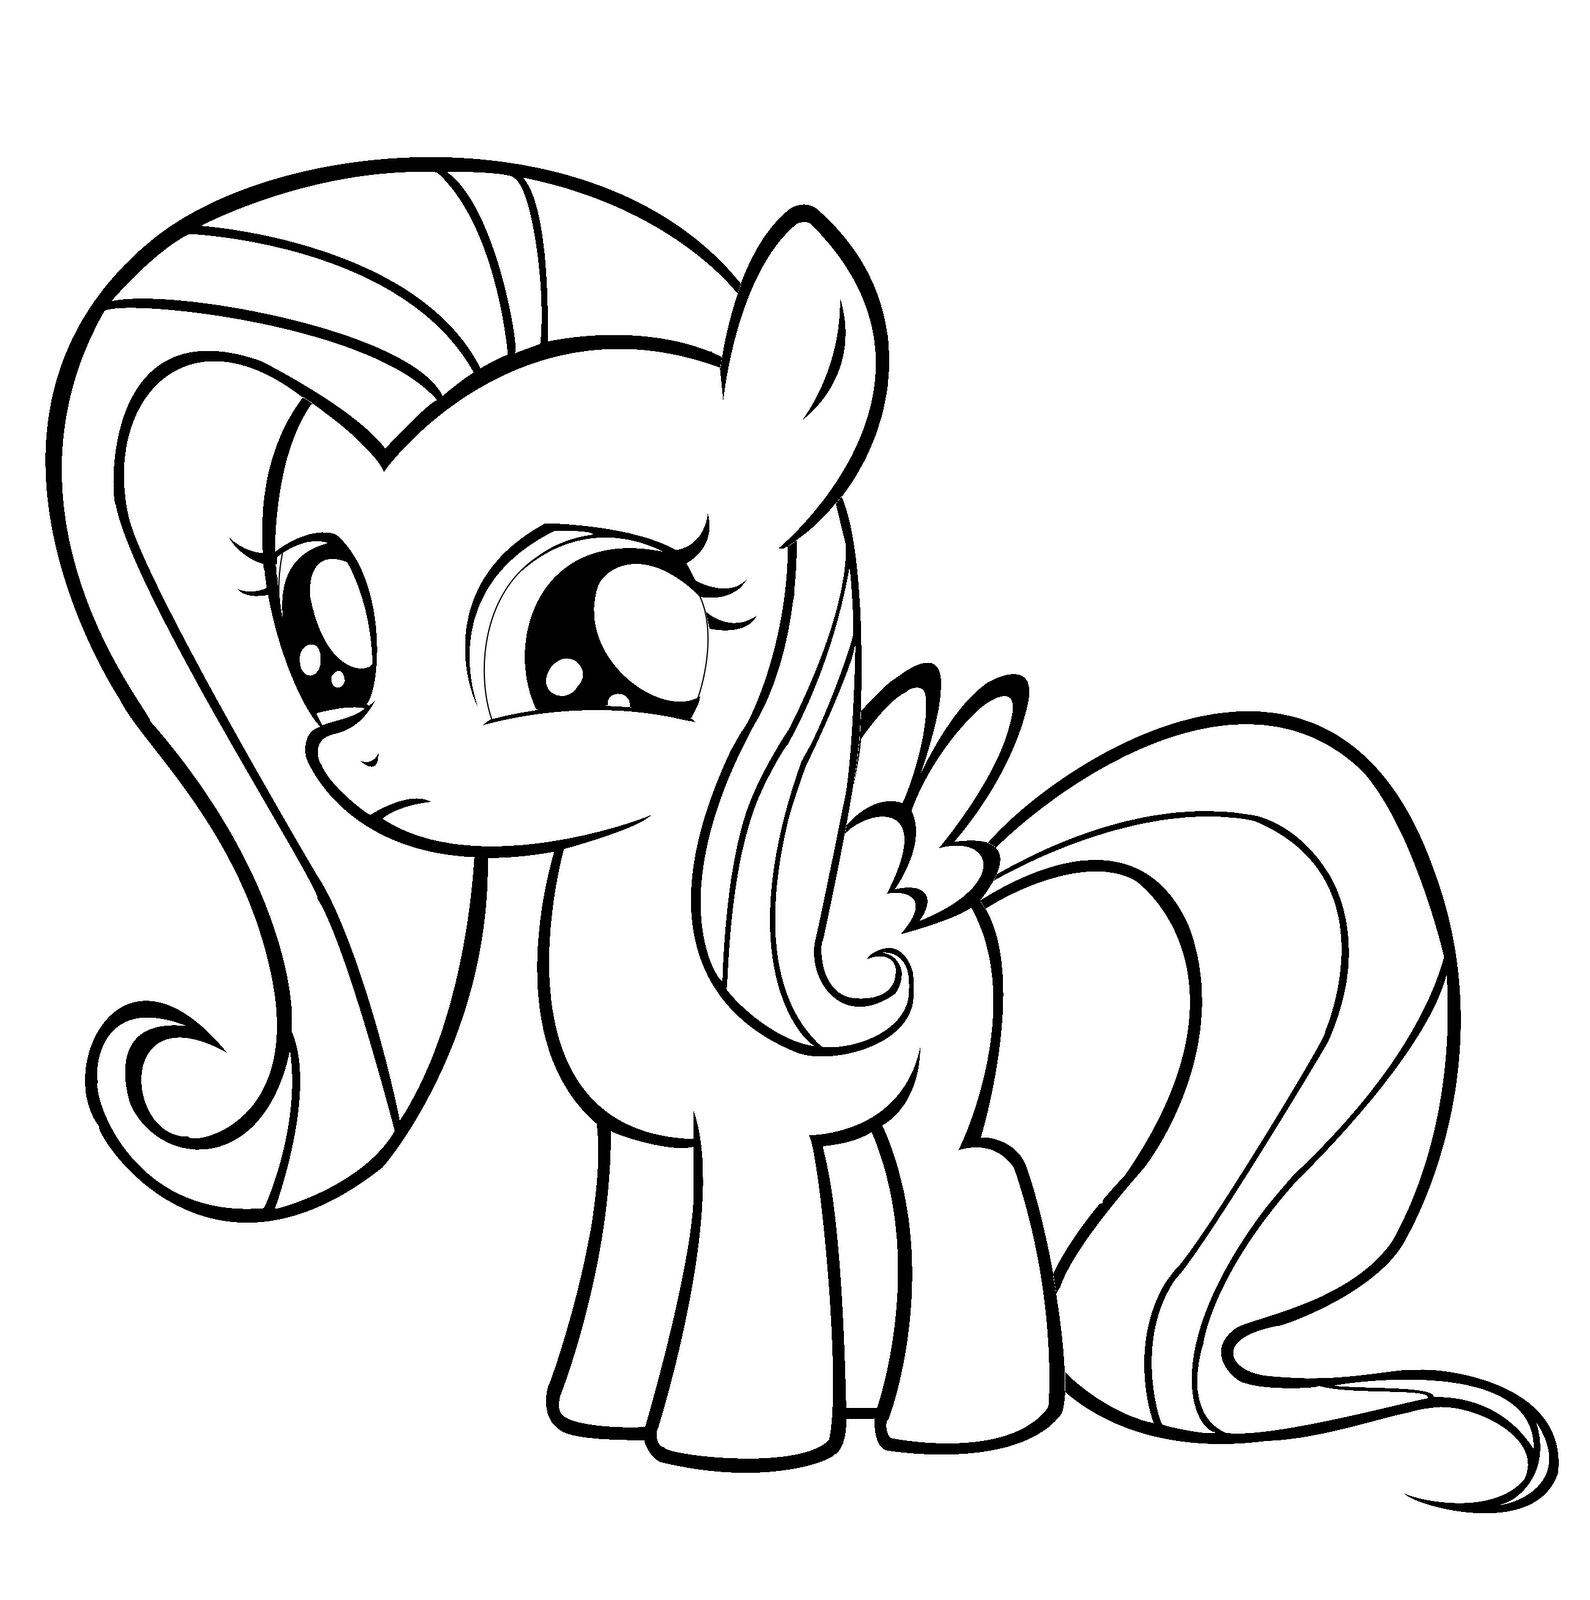 Coloring Fun Young Fluttershy My Little Pony Coloring Animal Coloring Pages Coloring Pages